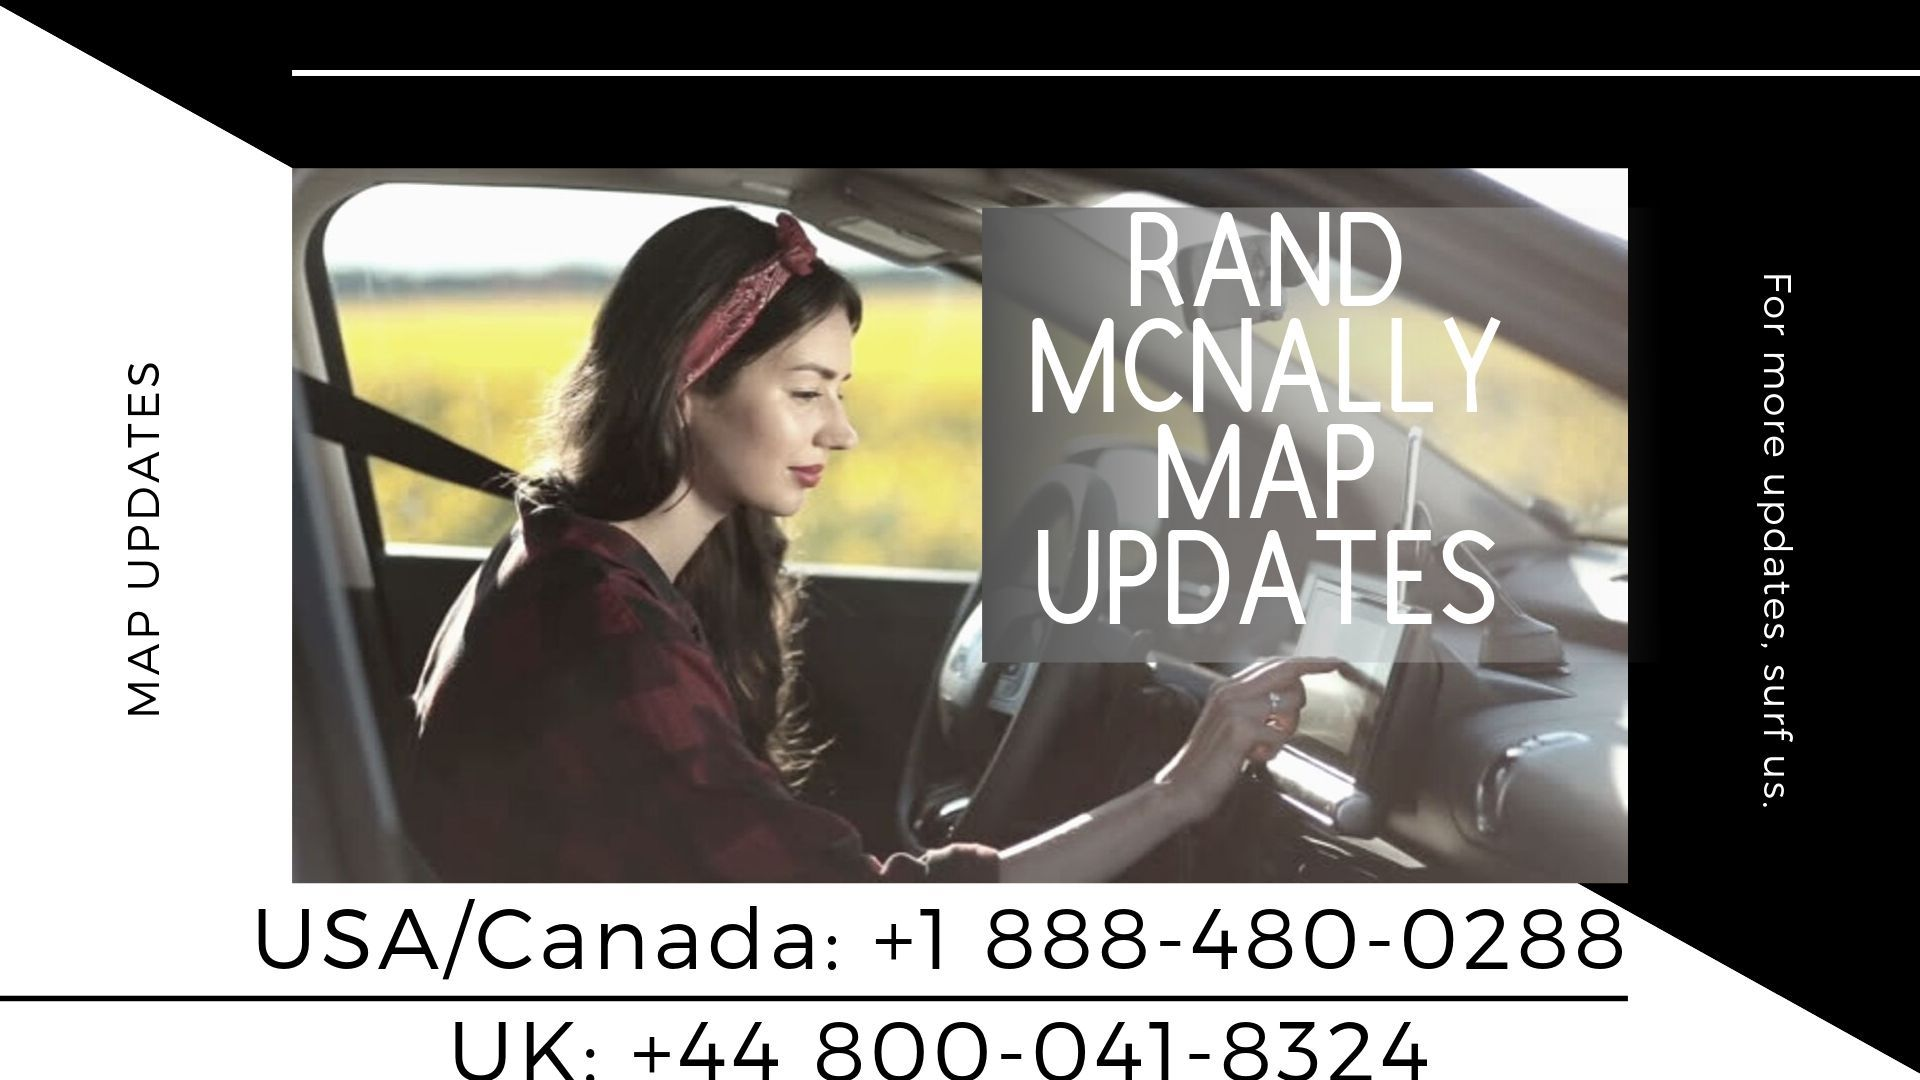 Rand McNally update maps can download by first downloading ... on large print map of usa, tomtom updates usa, free garmin maps downloads usa,